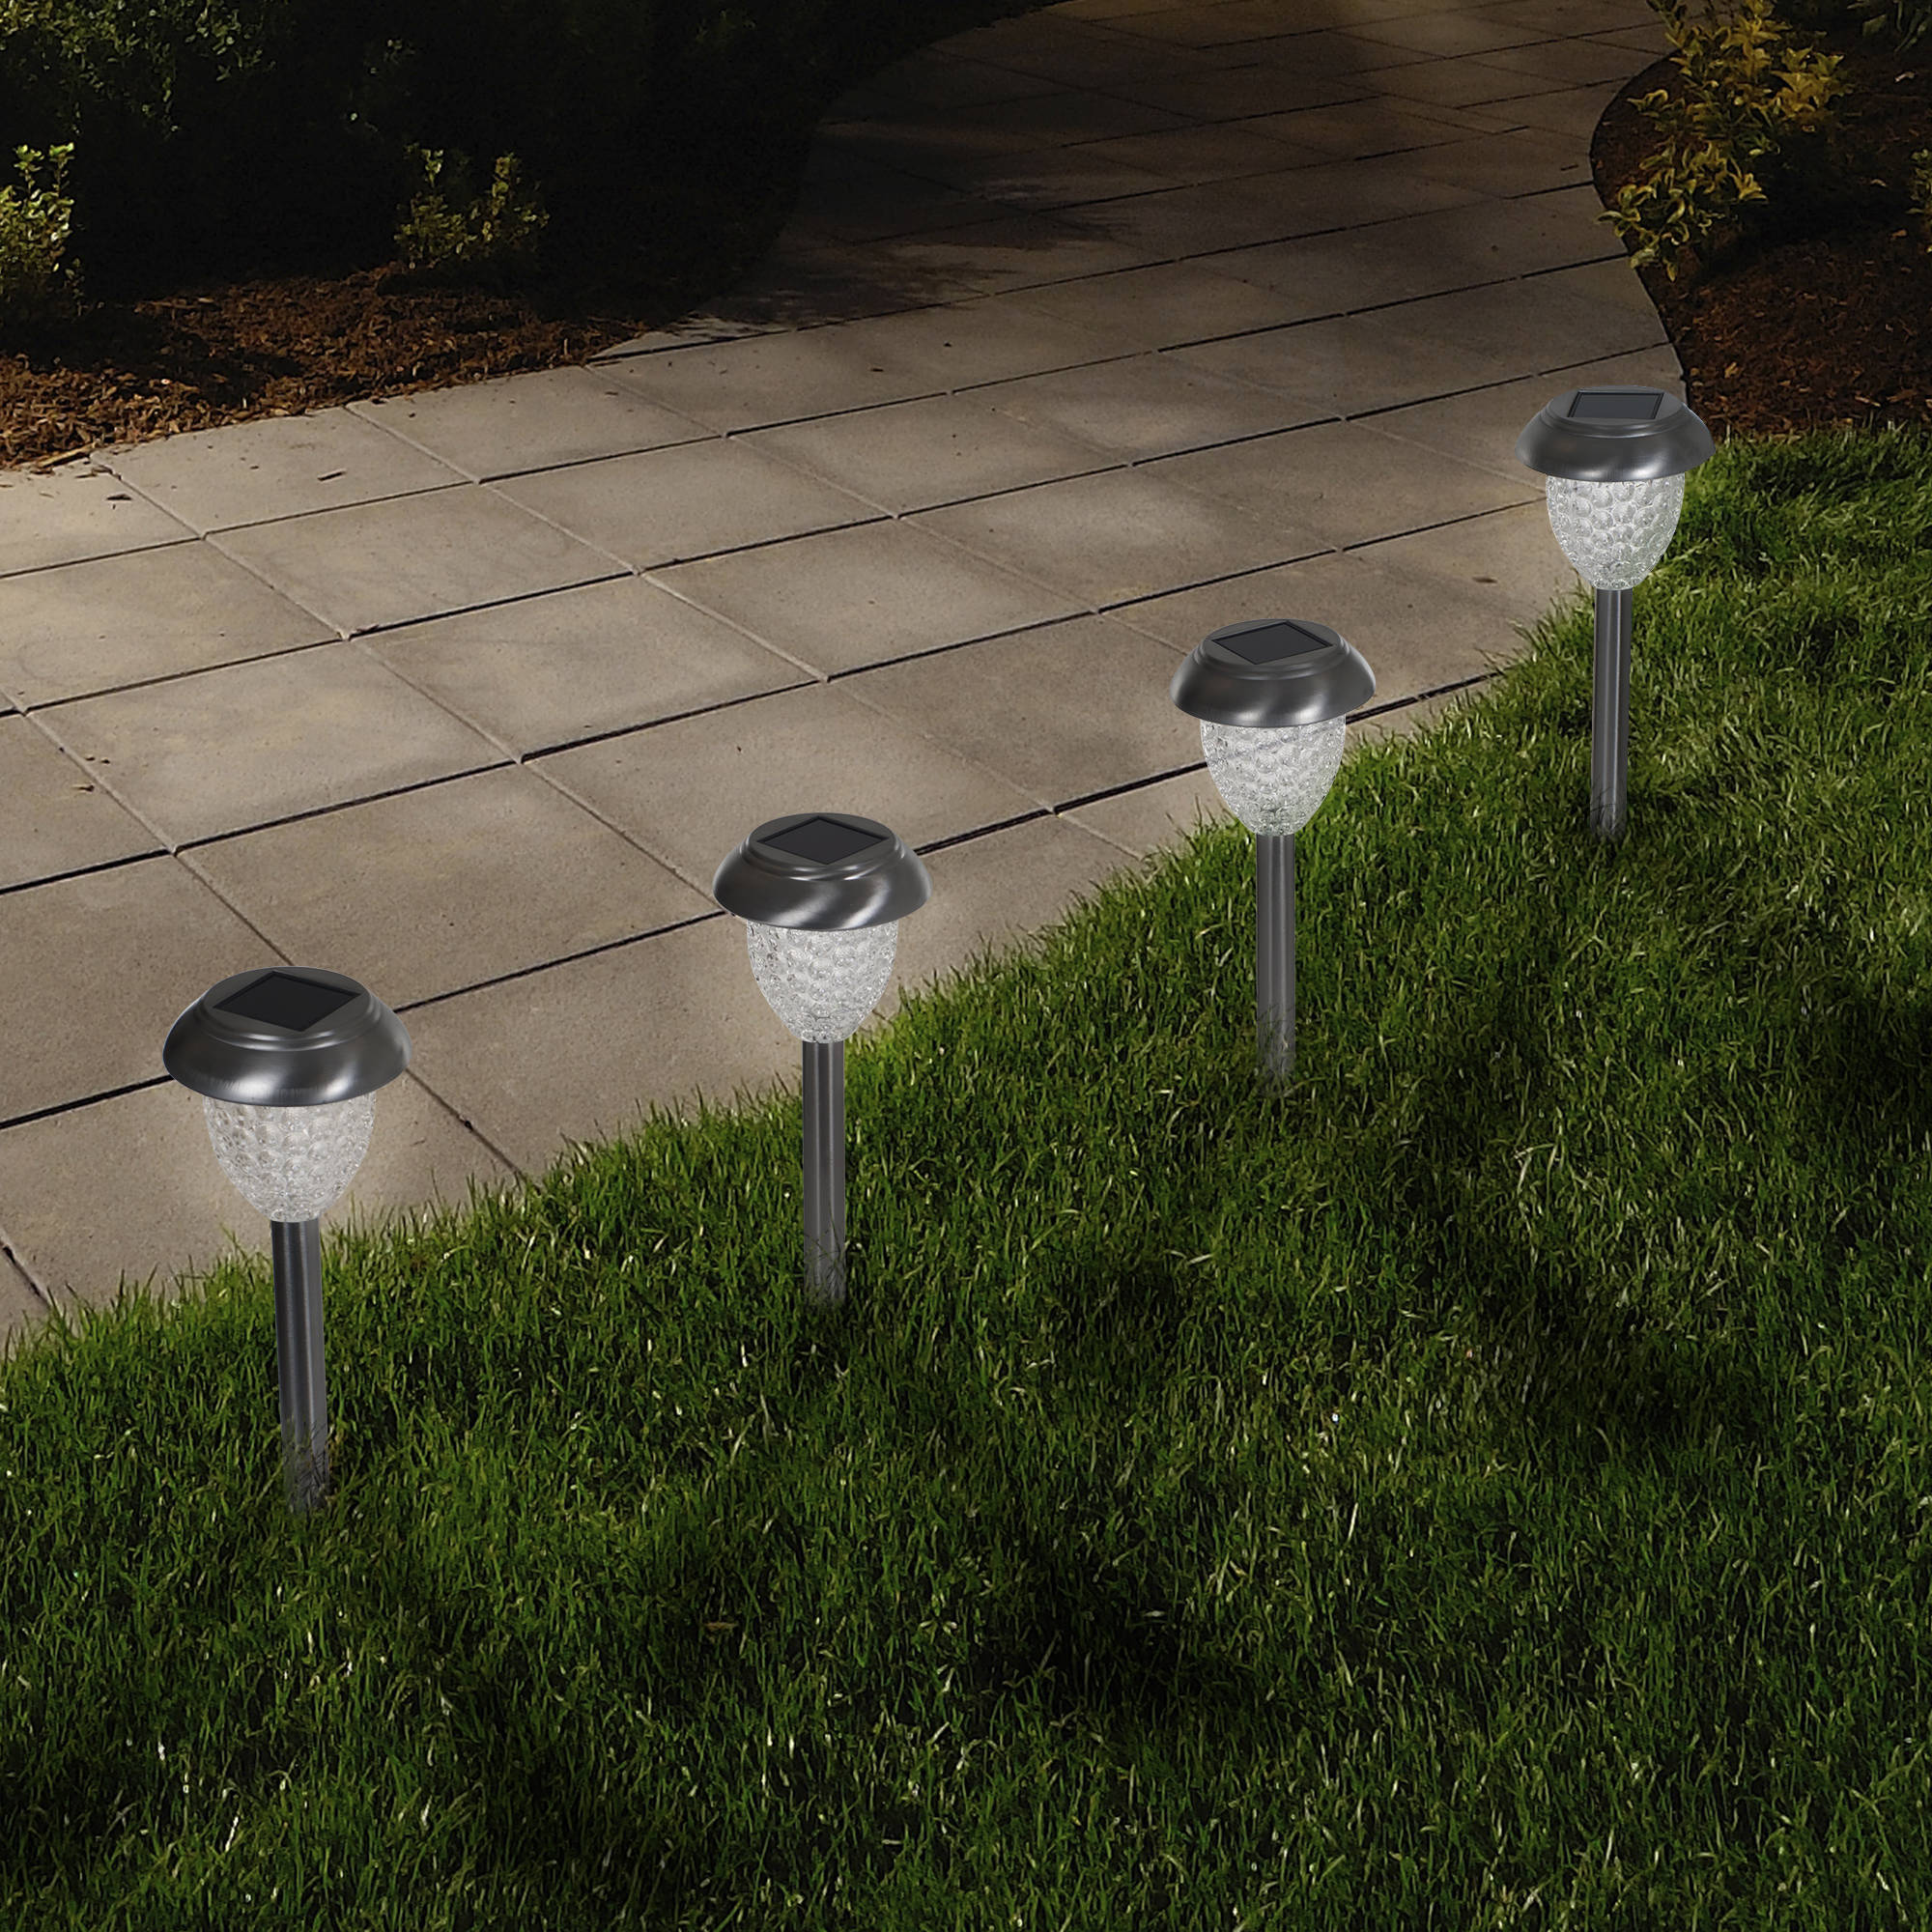 Pure Garden LED Solar Honeycomb Glass Pathway Lights, Set of 6